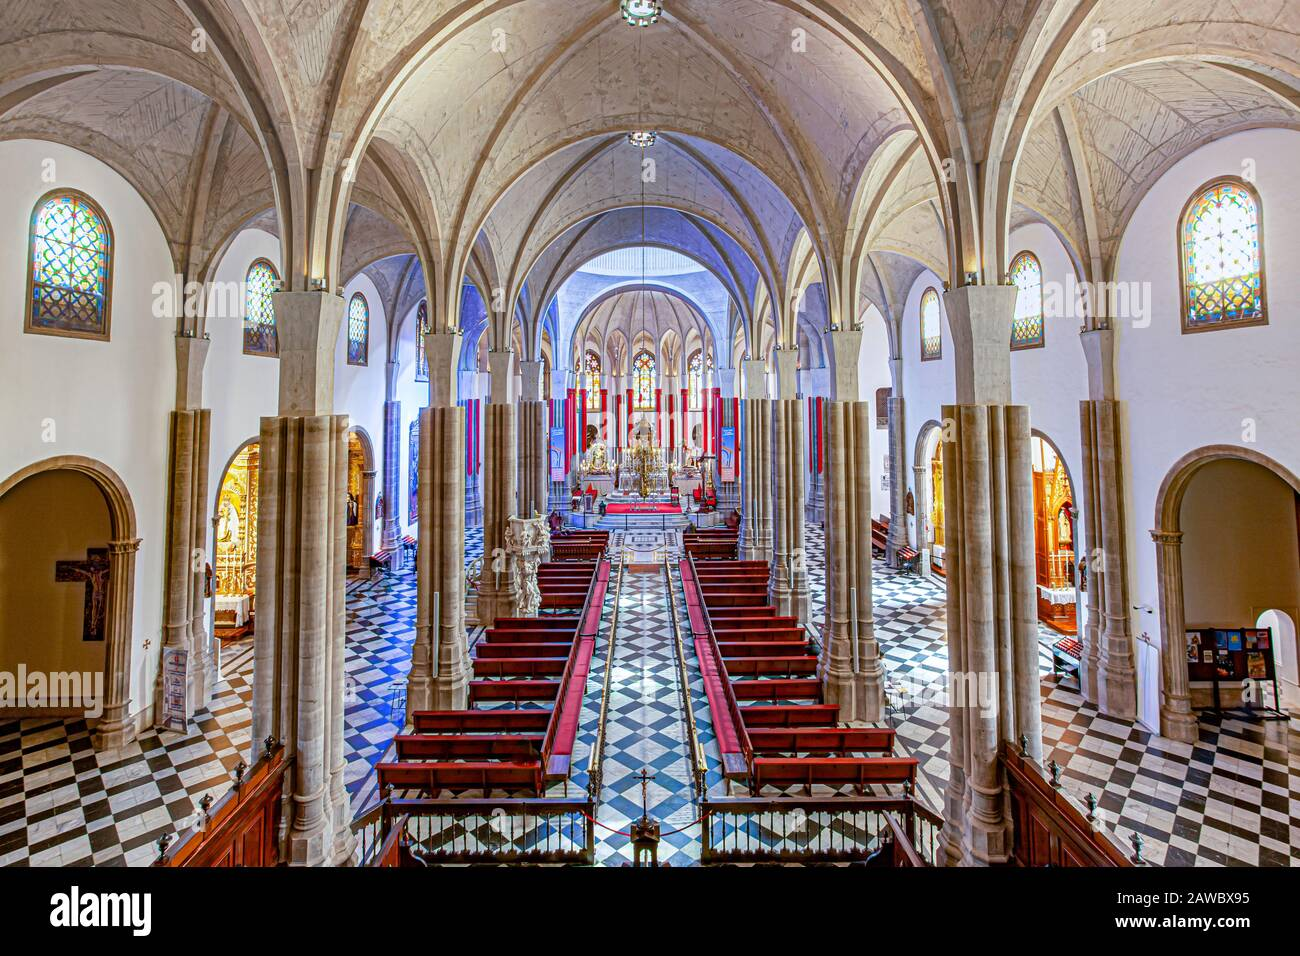 interior of The Cathedral of San Cristobal de La Laguna or Cathedral of Our Lady of Remedies ia Roman Catholic church in Tenerife Stock Photo